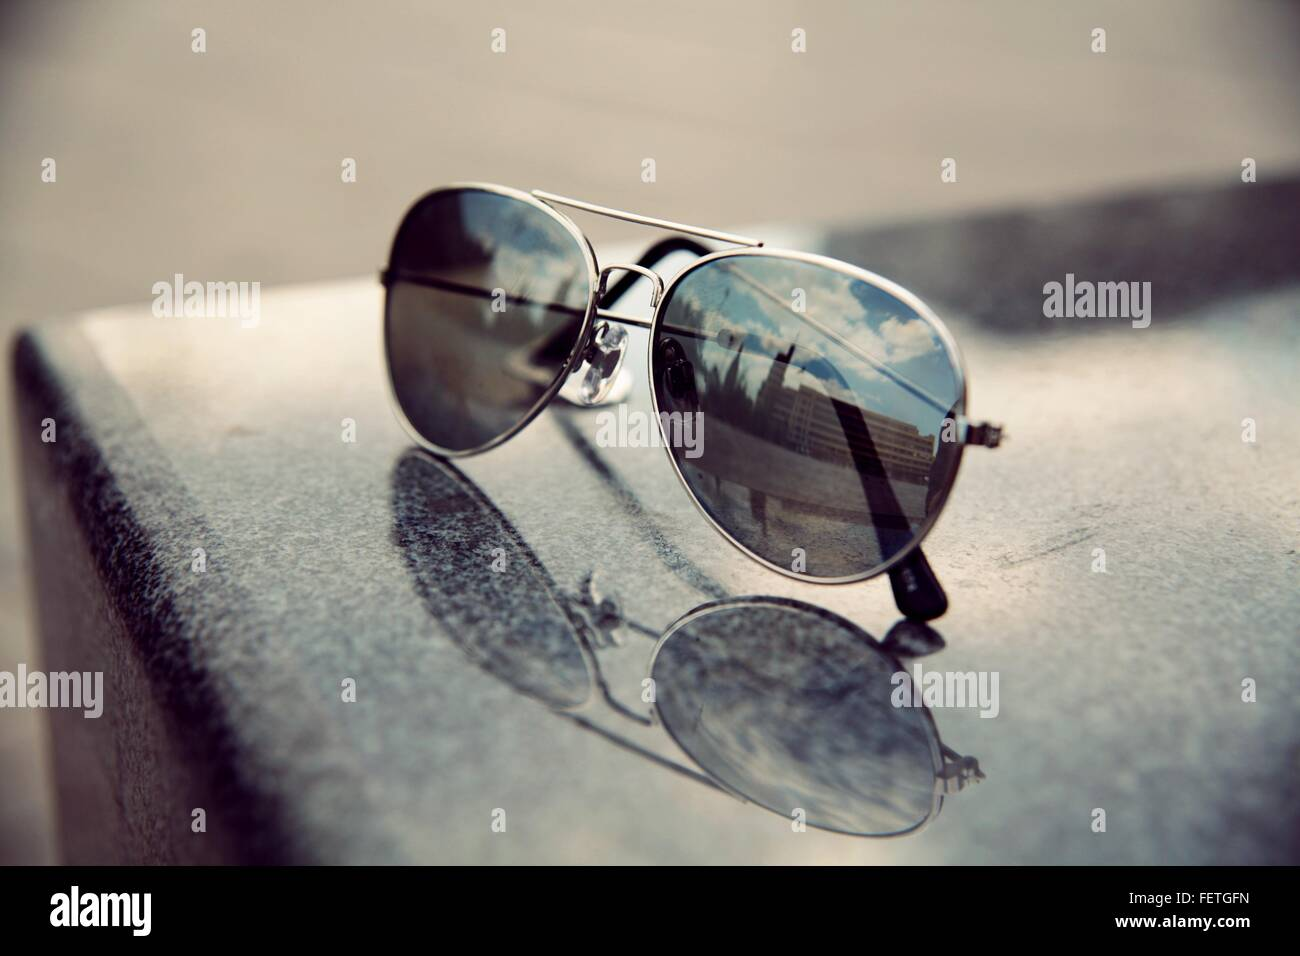 Reflection Of Building On Sunglasses - Stock Image